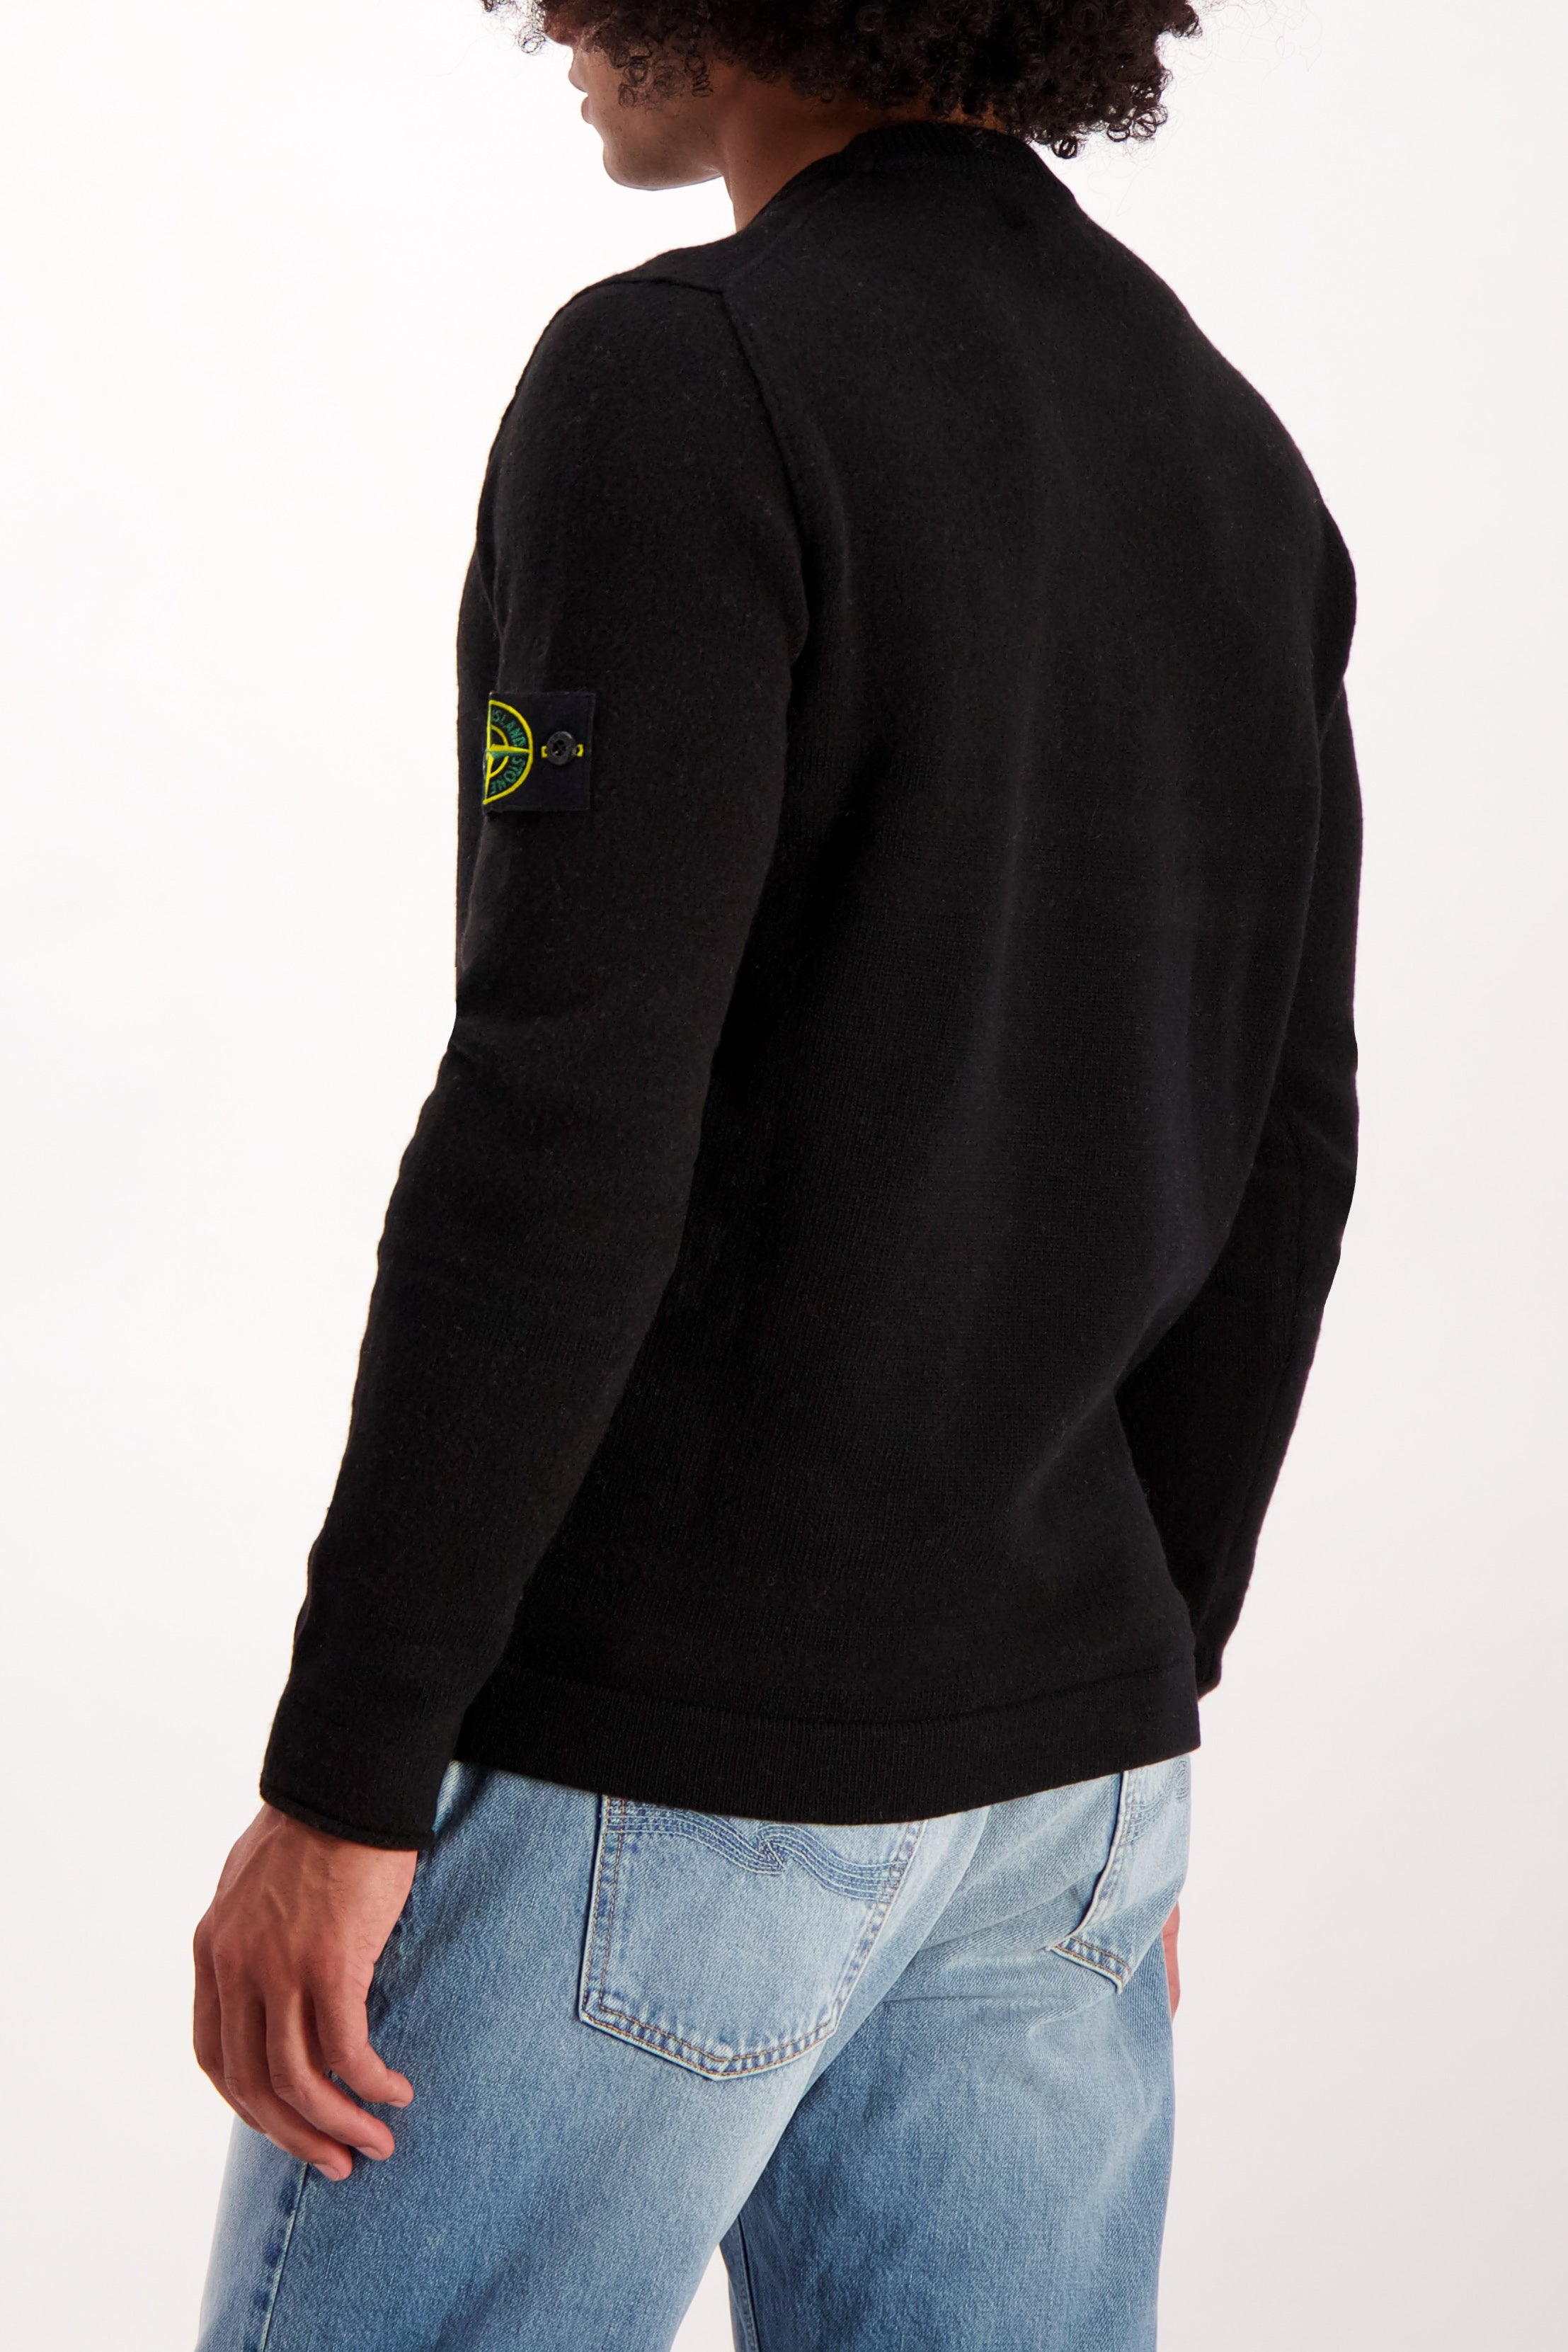 Back Crop Image Of Model Wearing Stone Island Crewneck sweatshirt Black